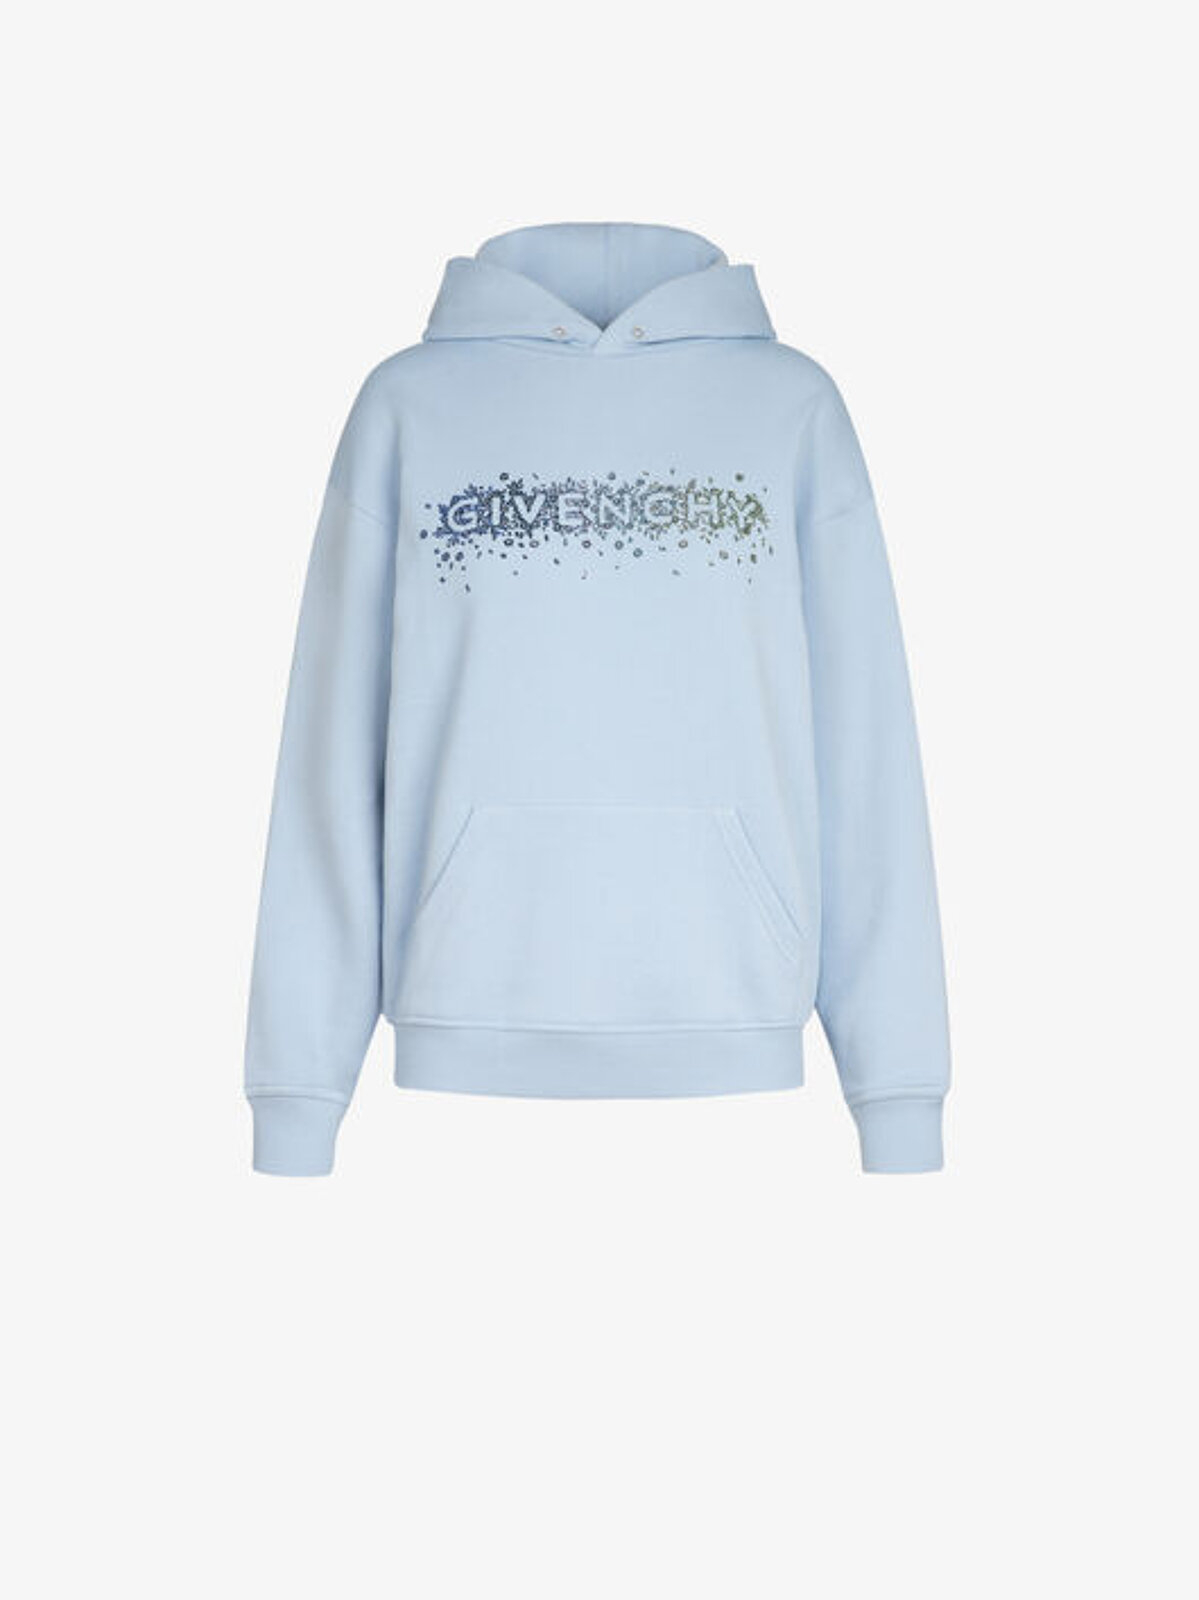 Givenchy Sweatshirt With Crystal Embroidery - Givenchy